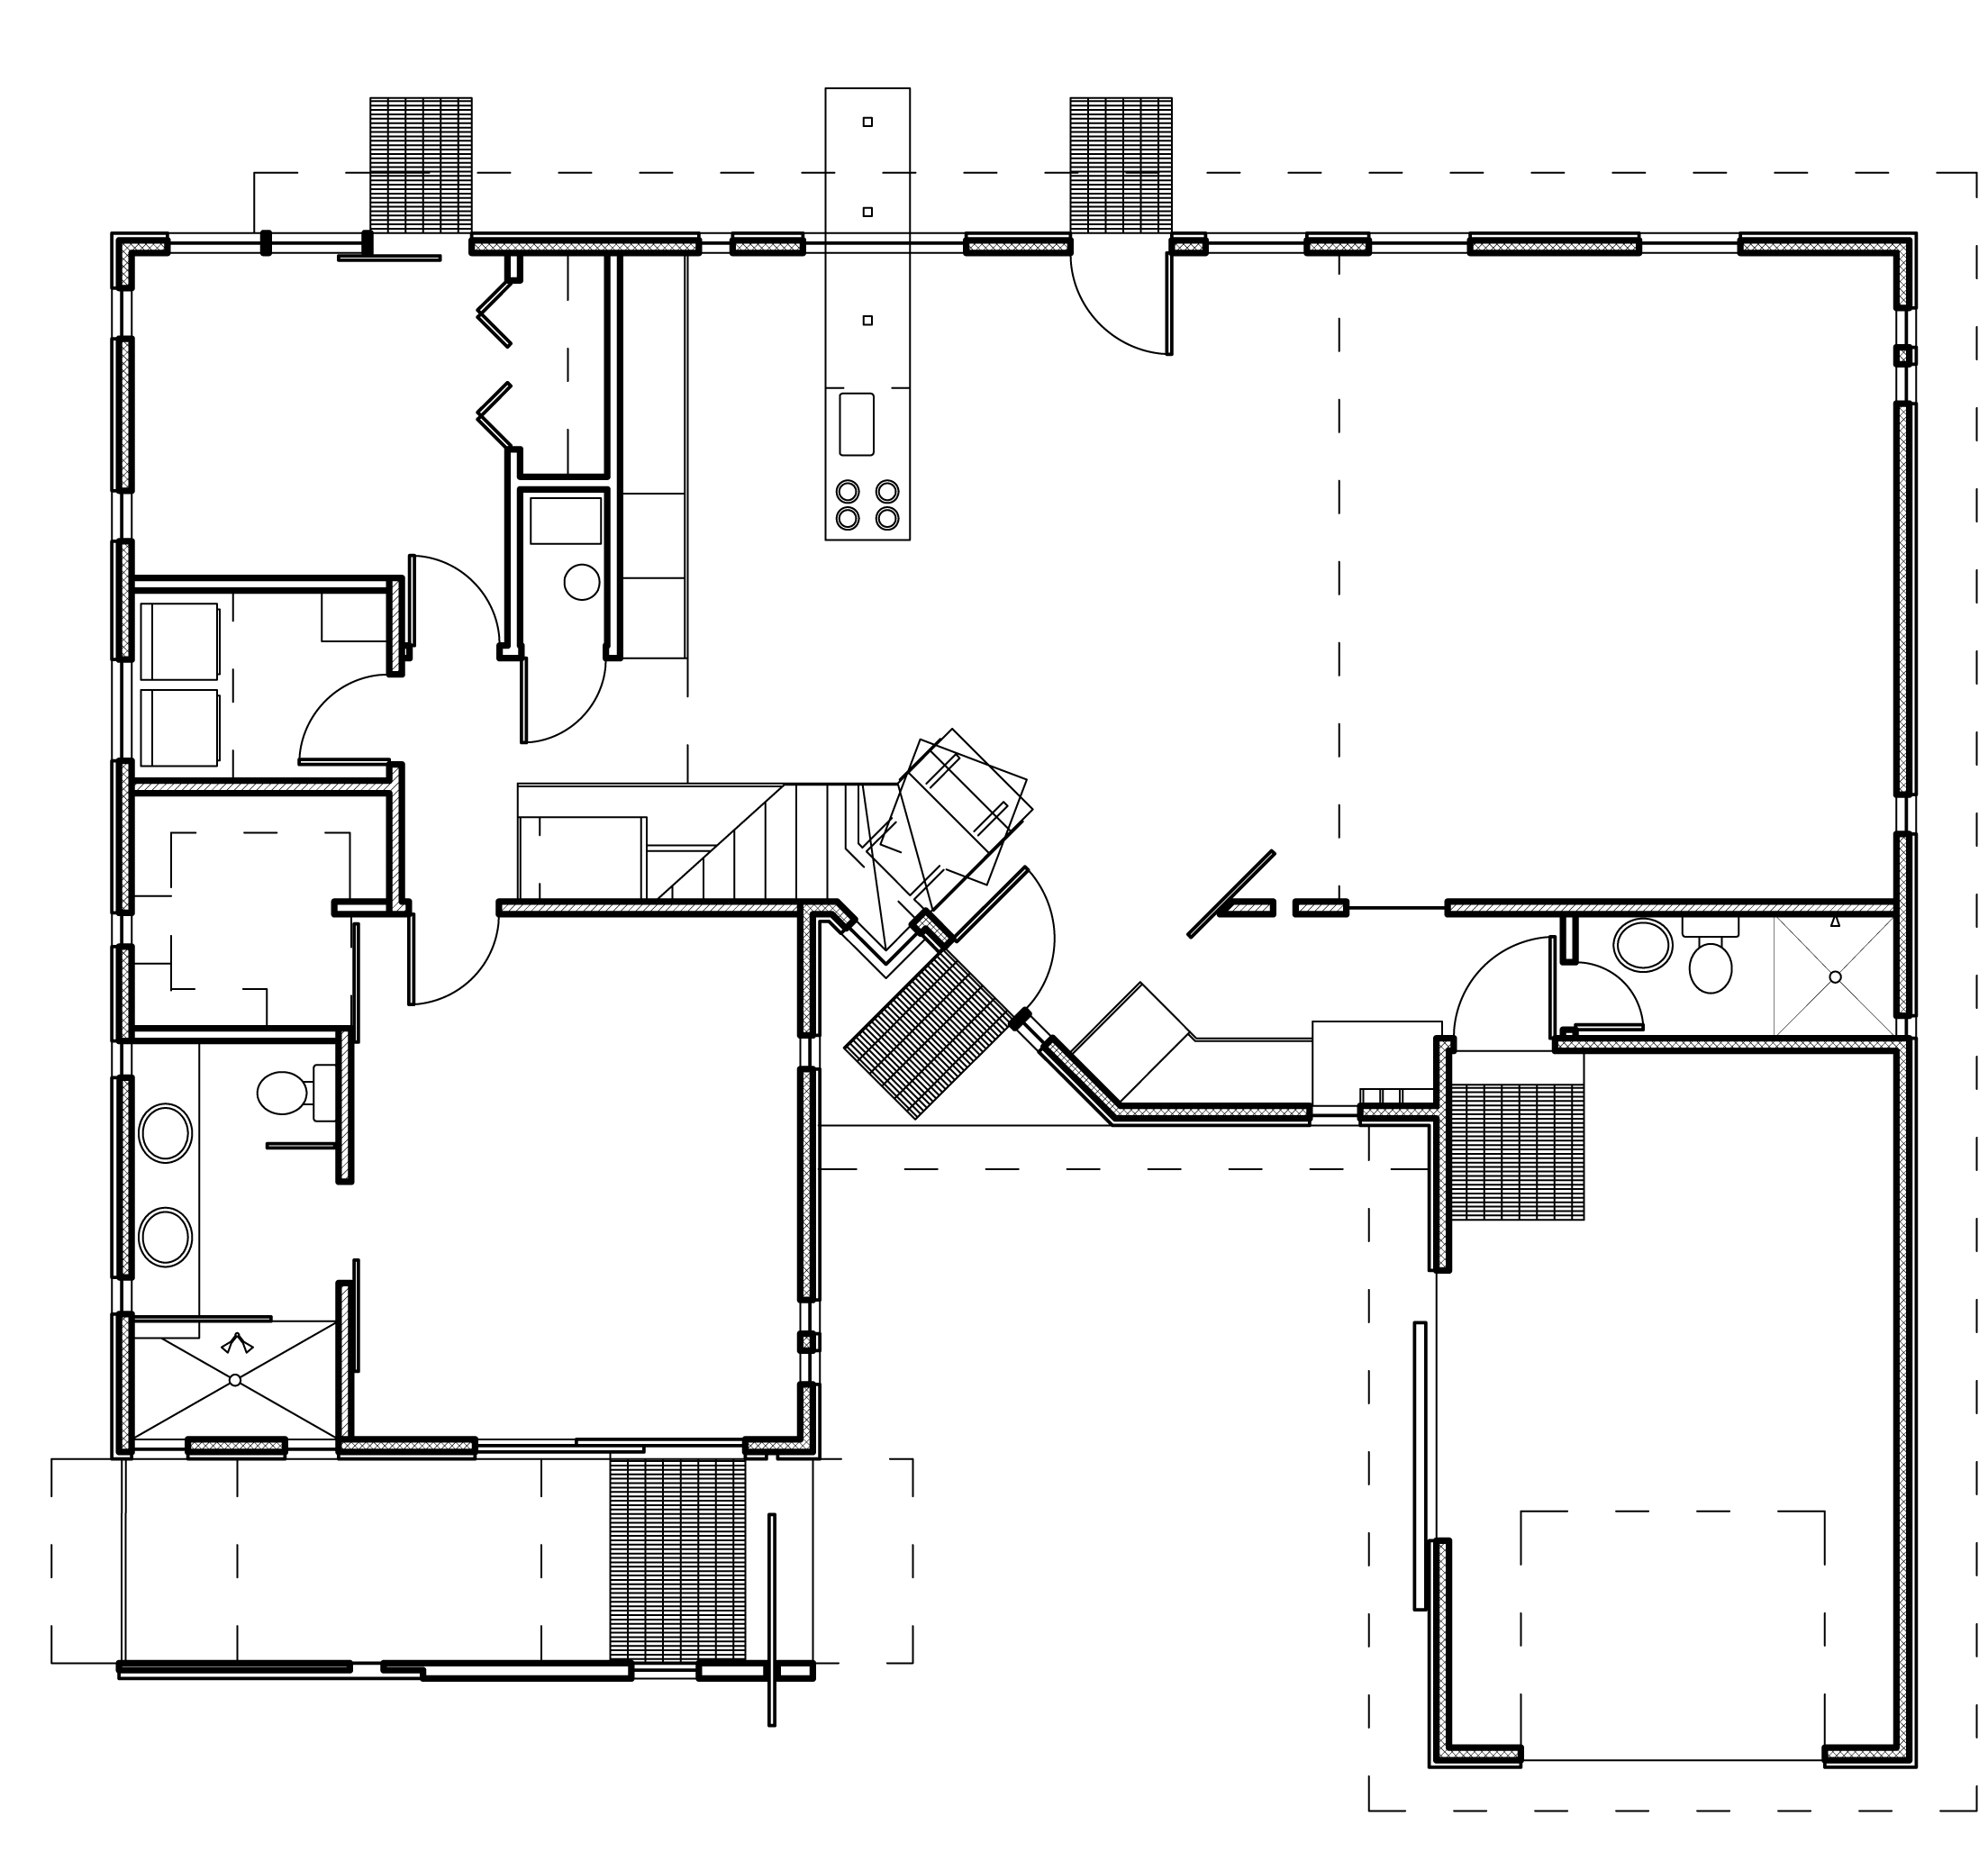 Modern house plans contemporary home designs floor plan 03 for Houses and plans